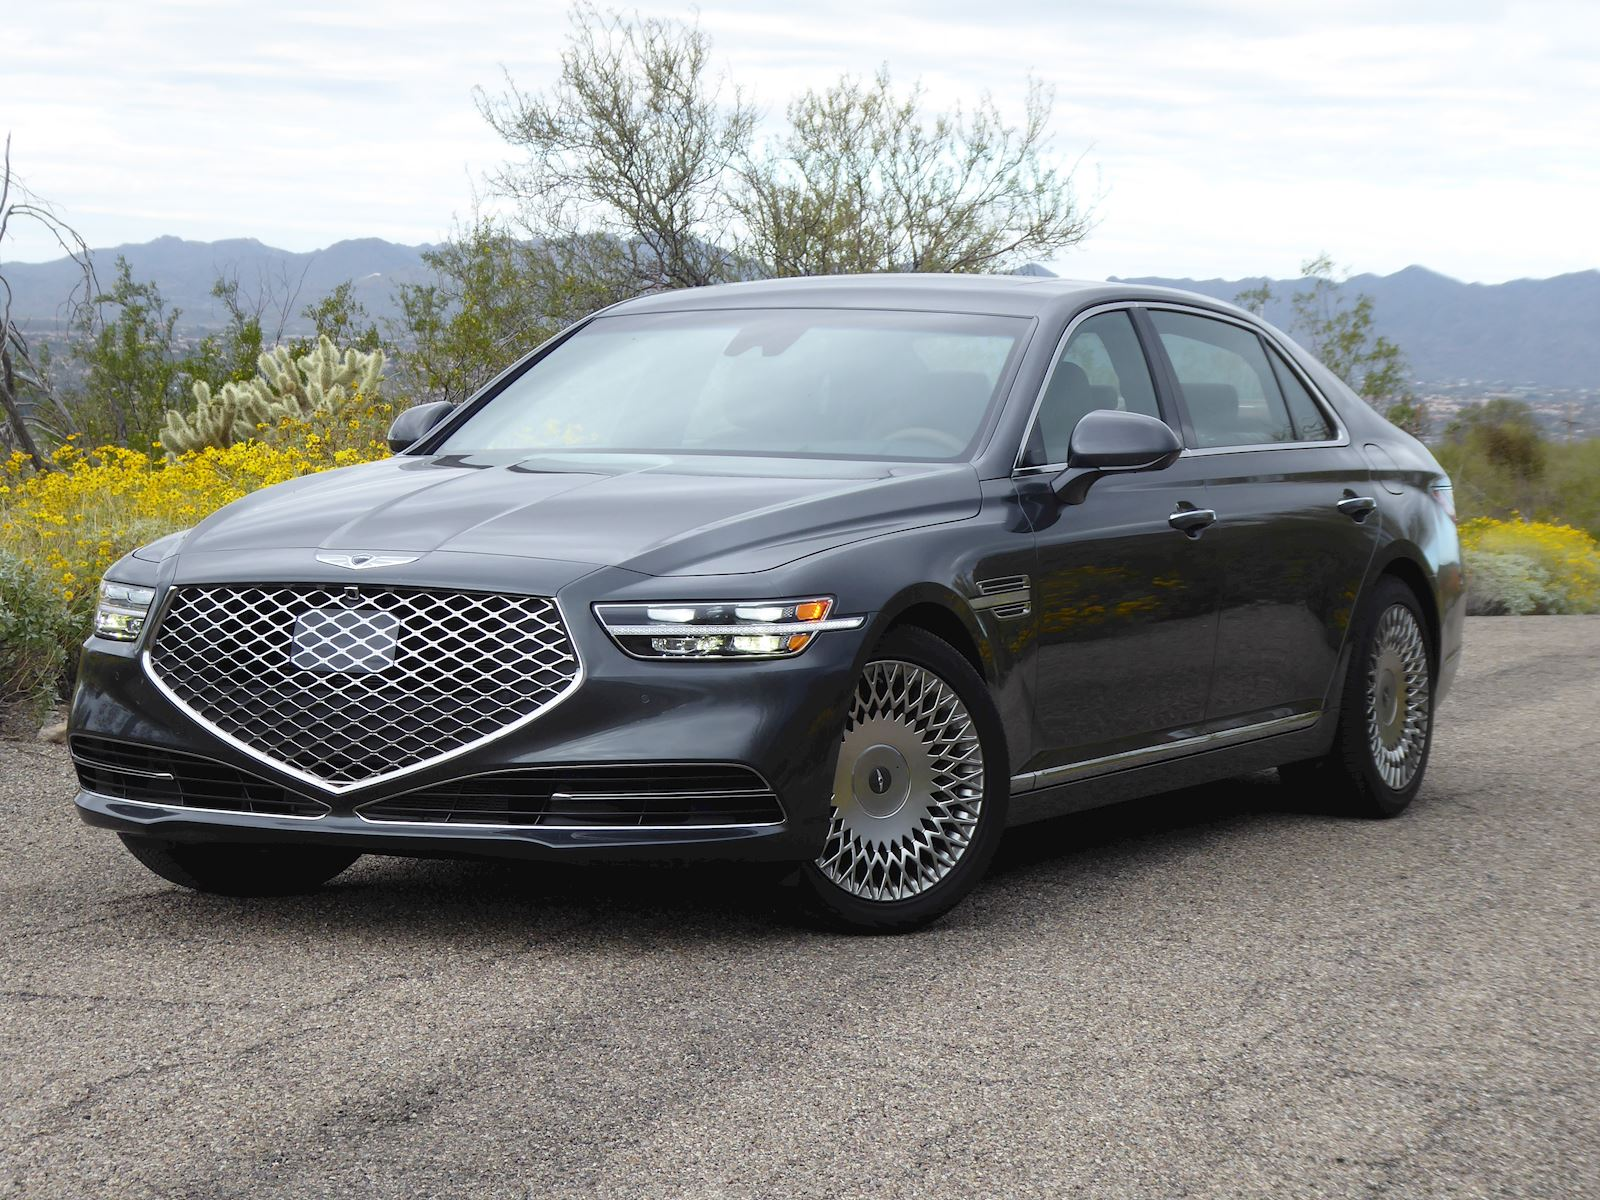 2020 Genesis G90 front view